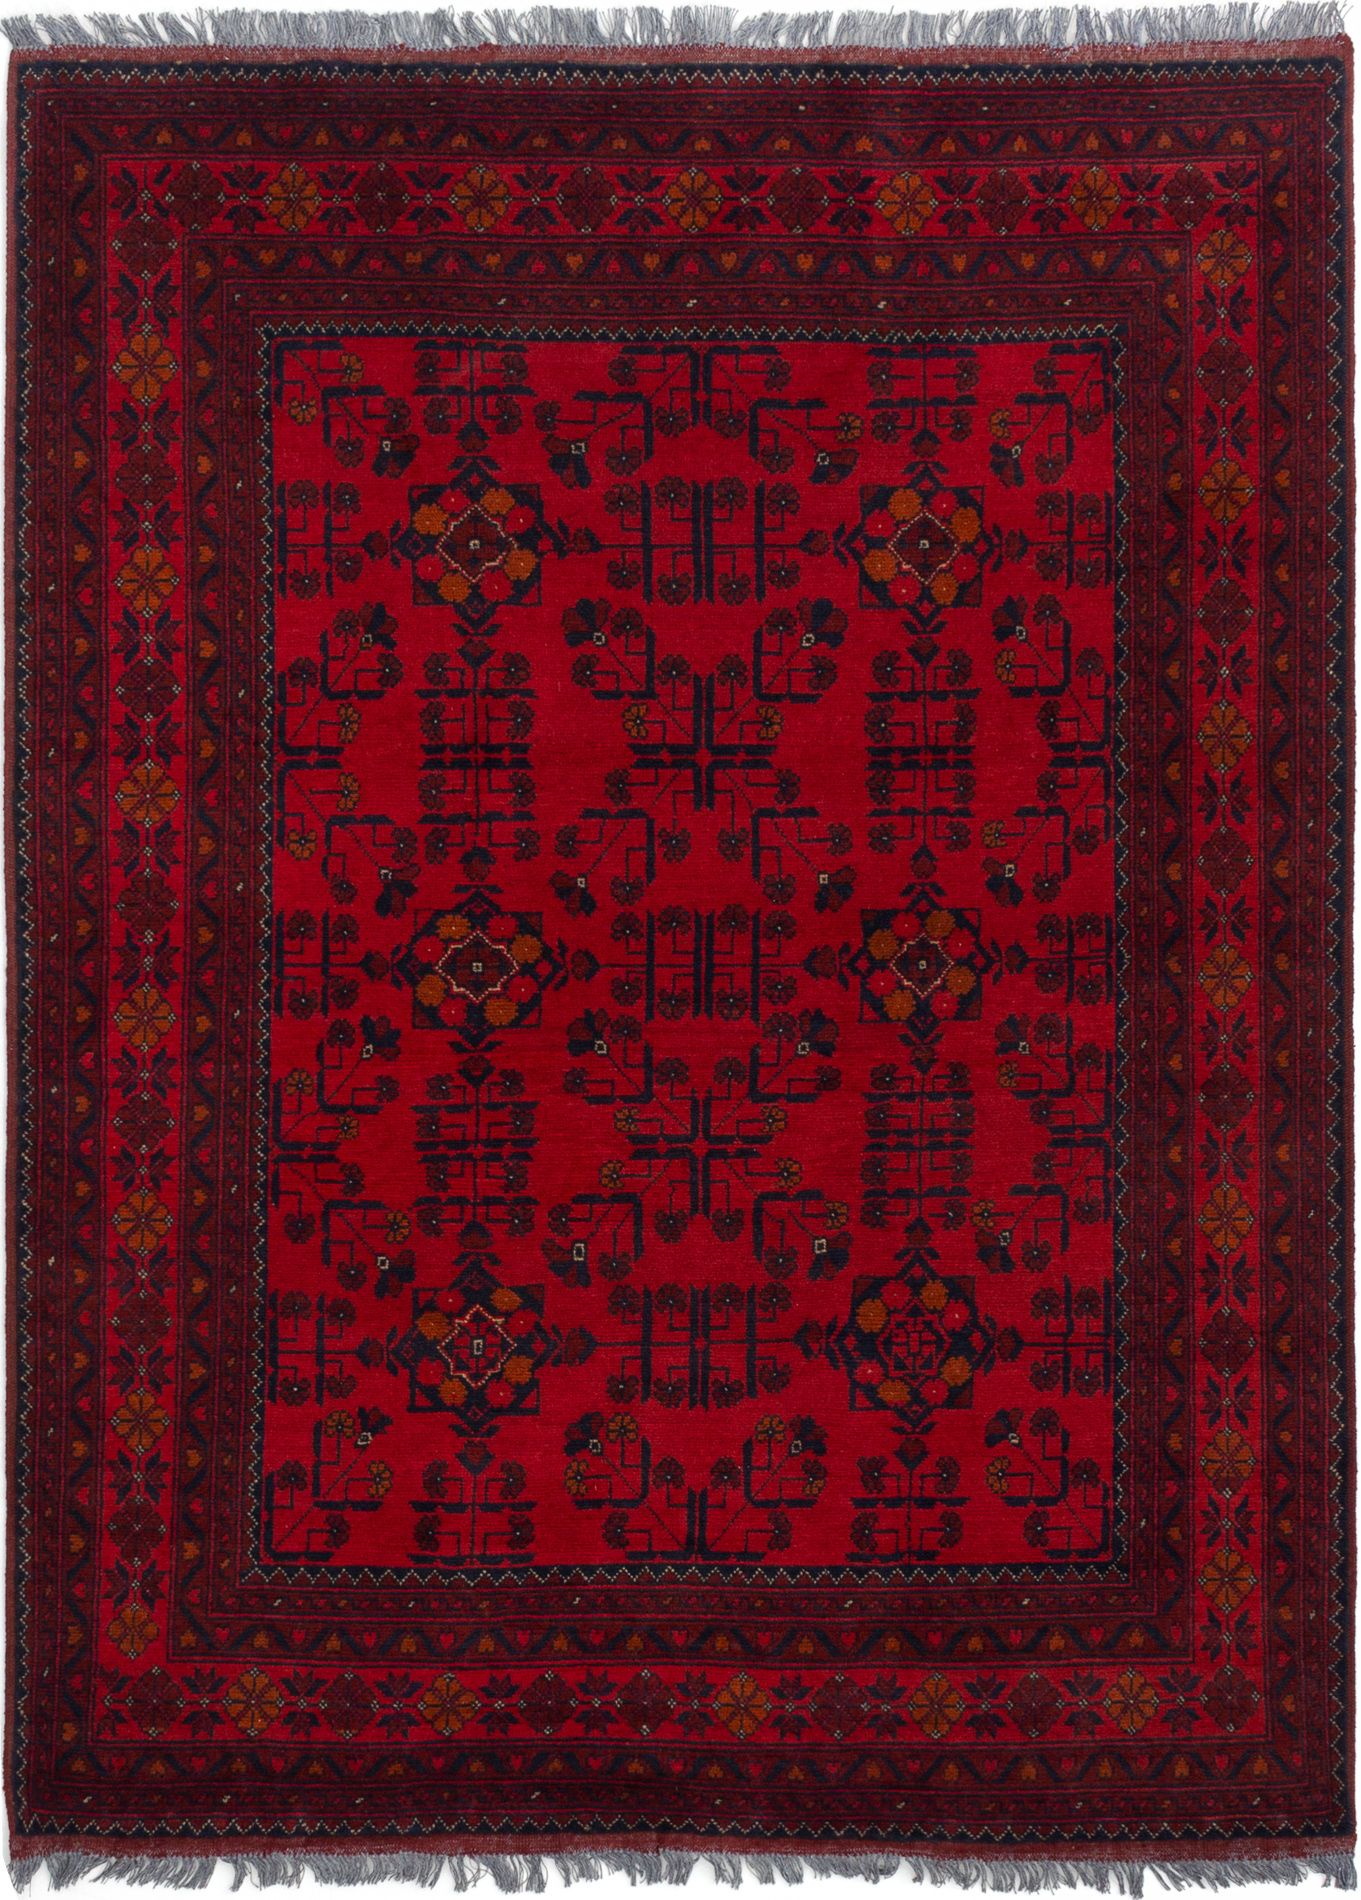 """Hand-knotted Finest Khal Mohammadi Red Wool Rug 4'11"""" x 6'7""""  Size: 4'11"""" x 6'7"""""""